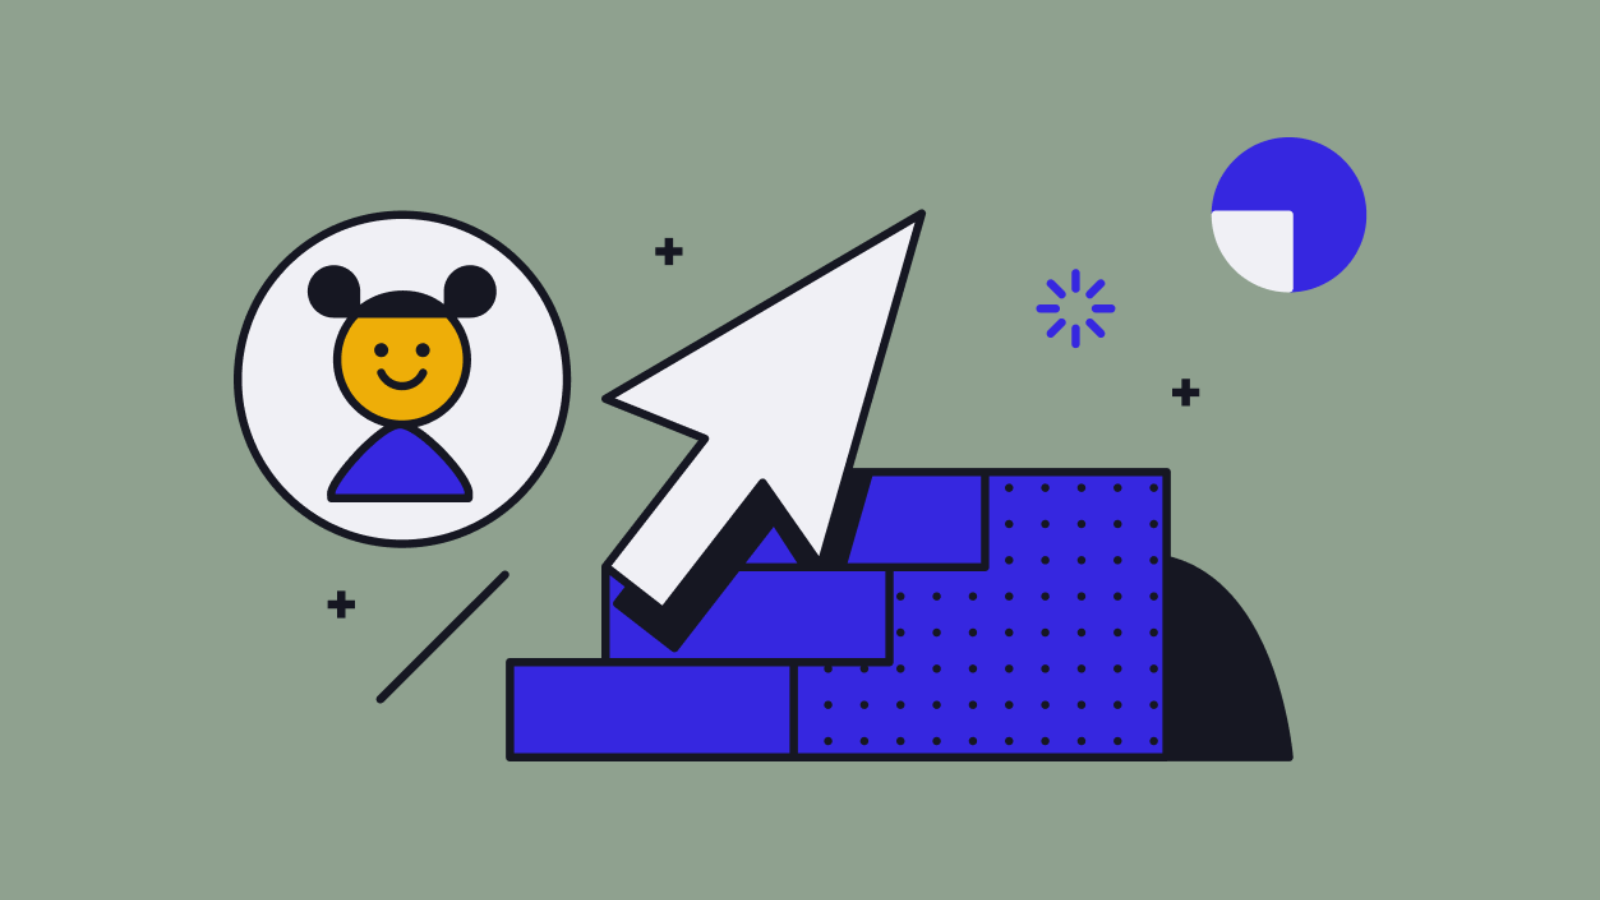 Graphic illustration indicating a young person moving up in a career trajectory